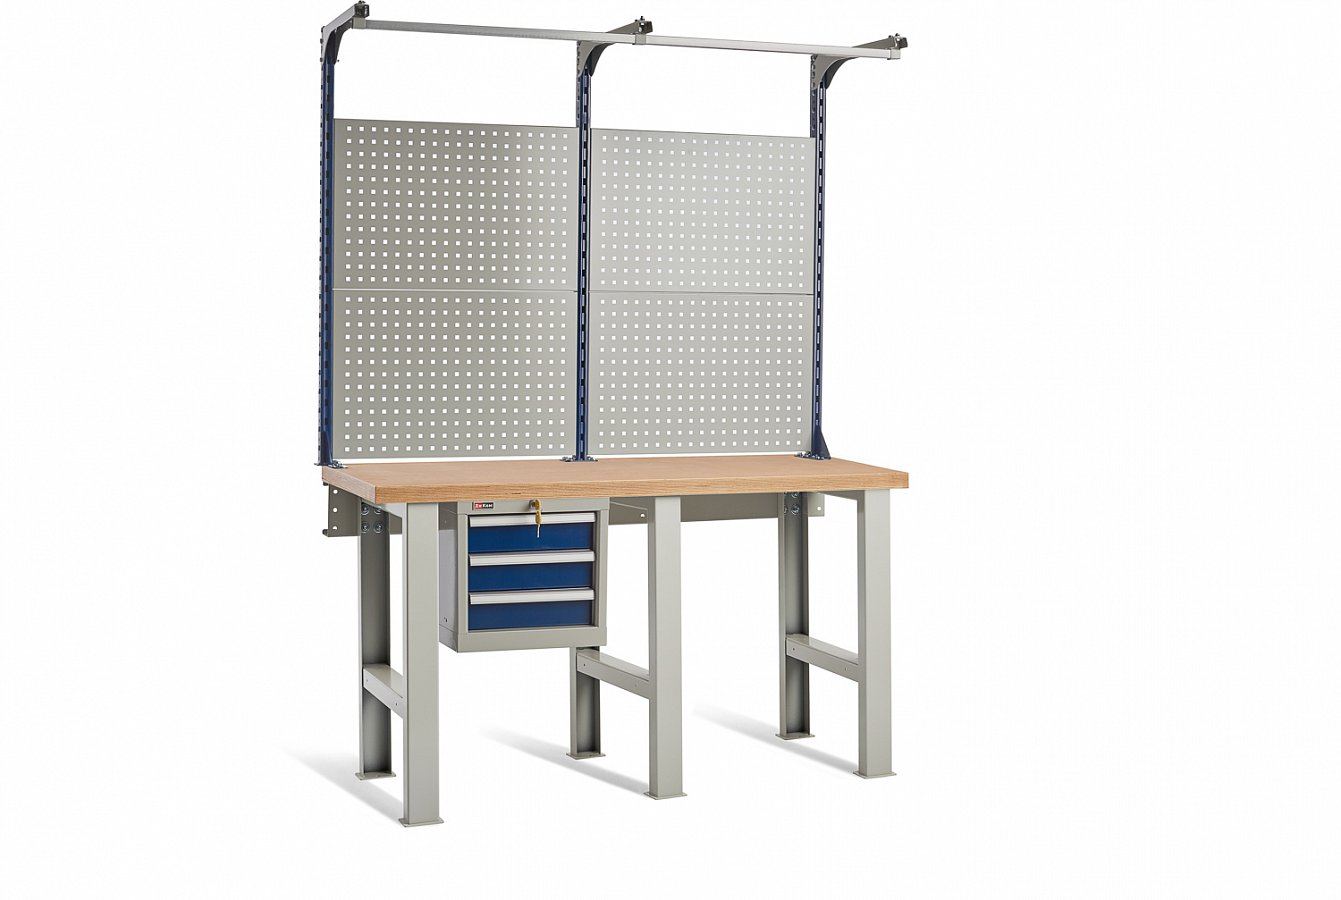 DiKom Workbench VS-150-02 (4)